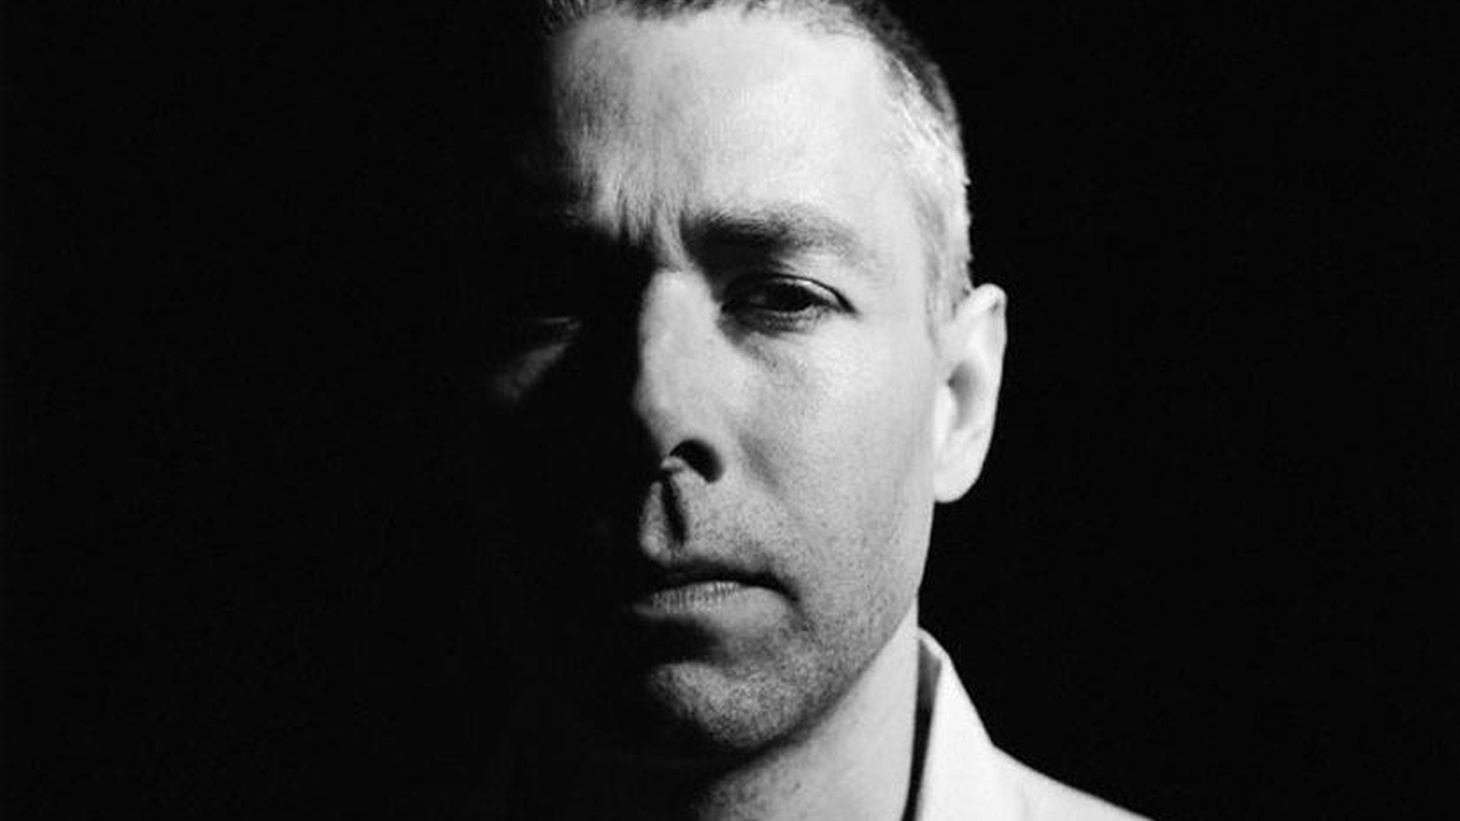 Garth Trinidad pays tribute to the late member of The Beastie Boys, Adam Yauch.